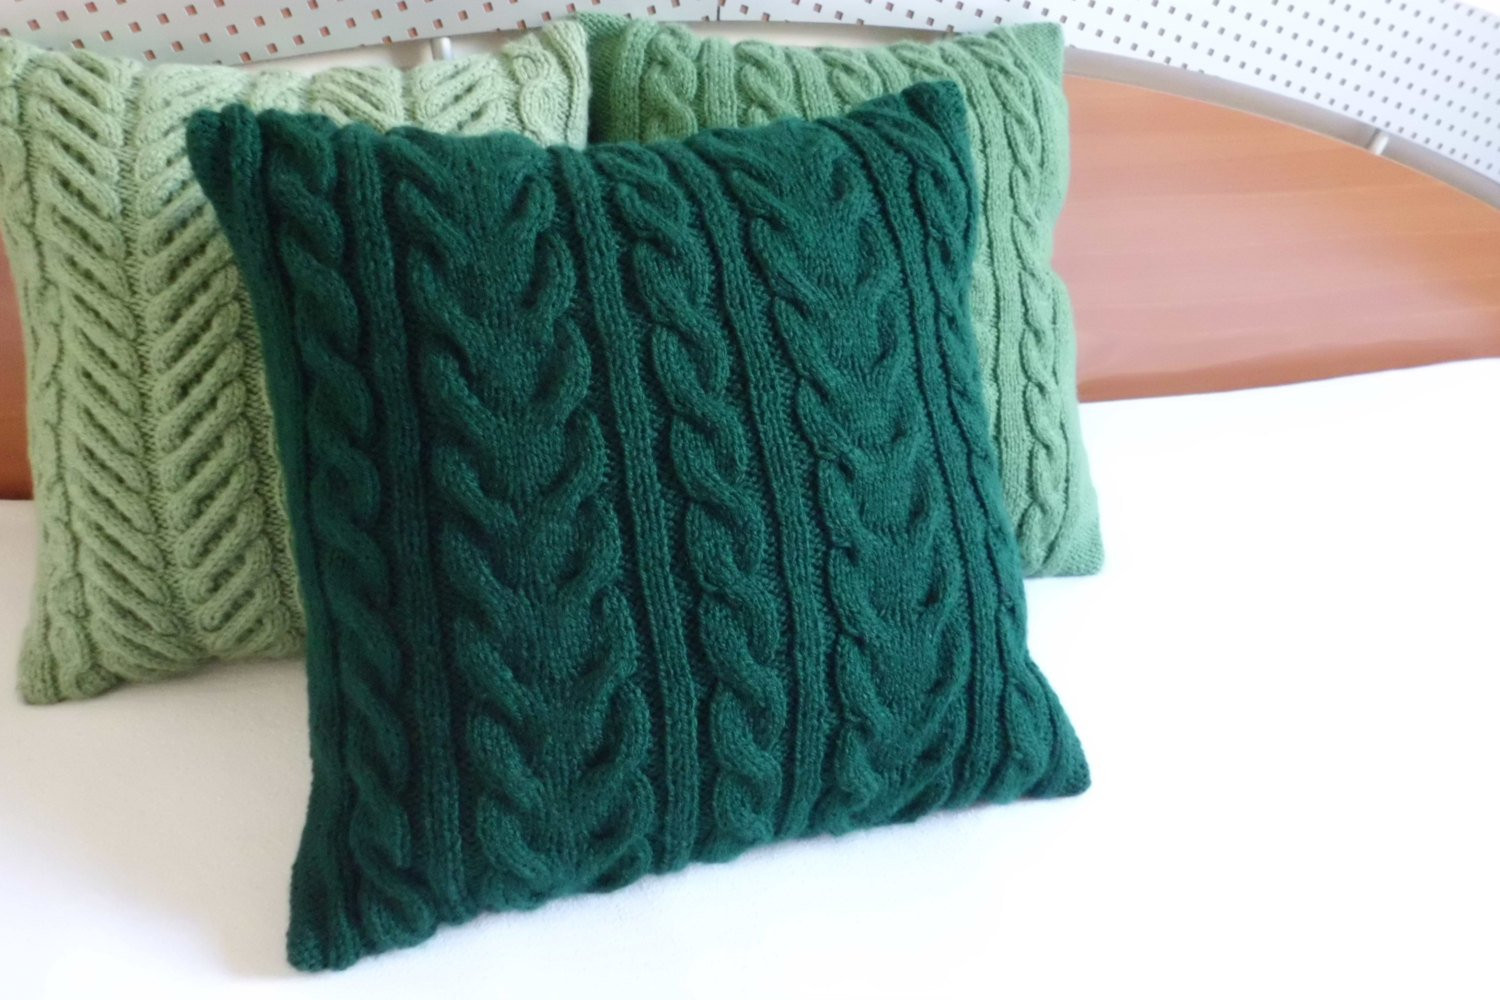 Awesome Dark Green Cable Knit Cushion Cover Throw Pillow Cable Knit Cable Knit Throw Pillow Of Great 48 Ideas Cable Knit Throw Pillow